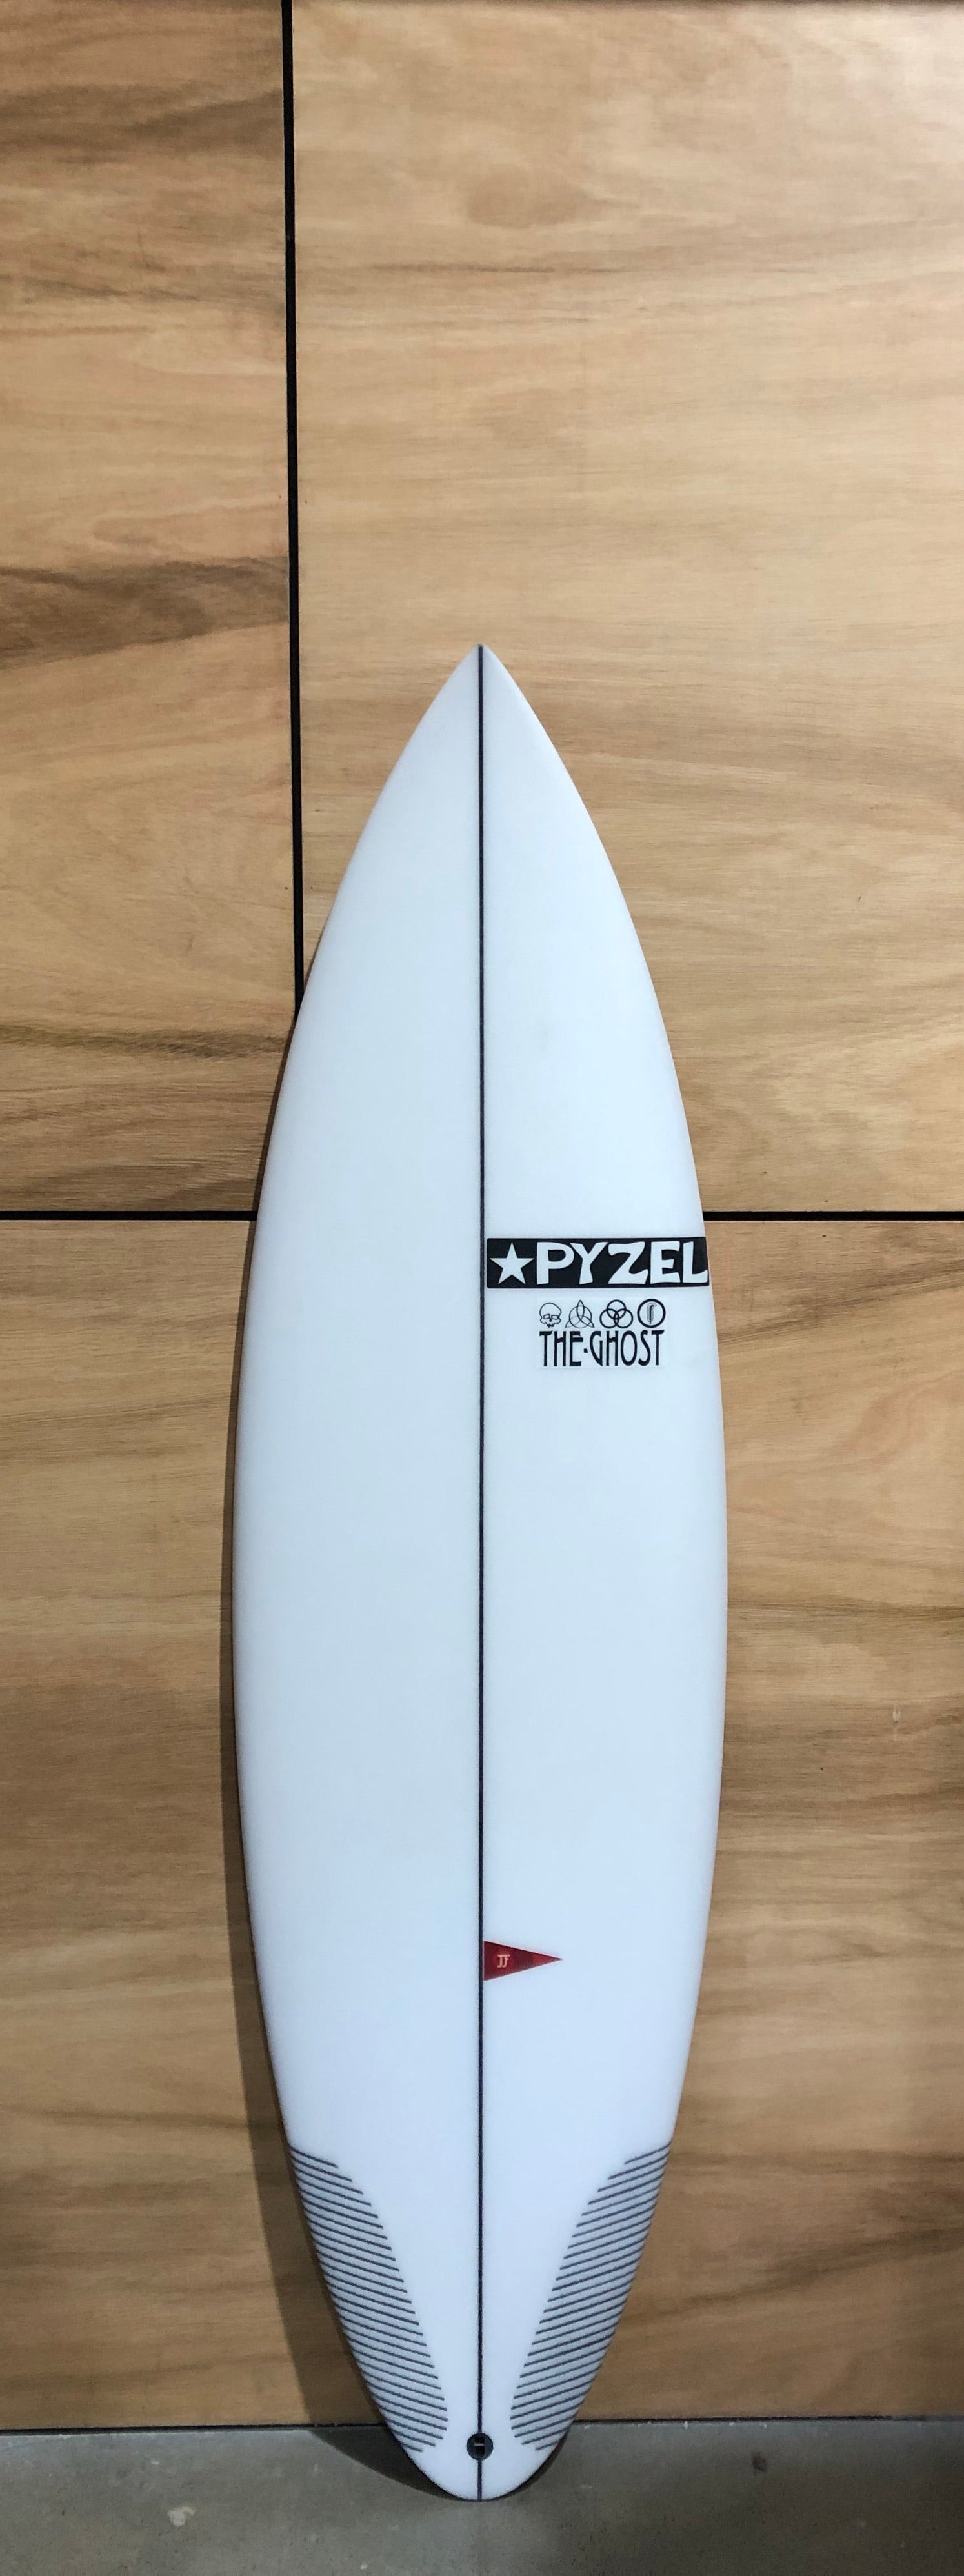 Pyzel The Ghost - Board Store PyzelSurfboard